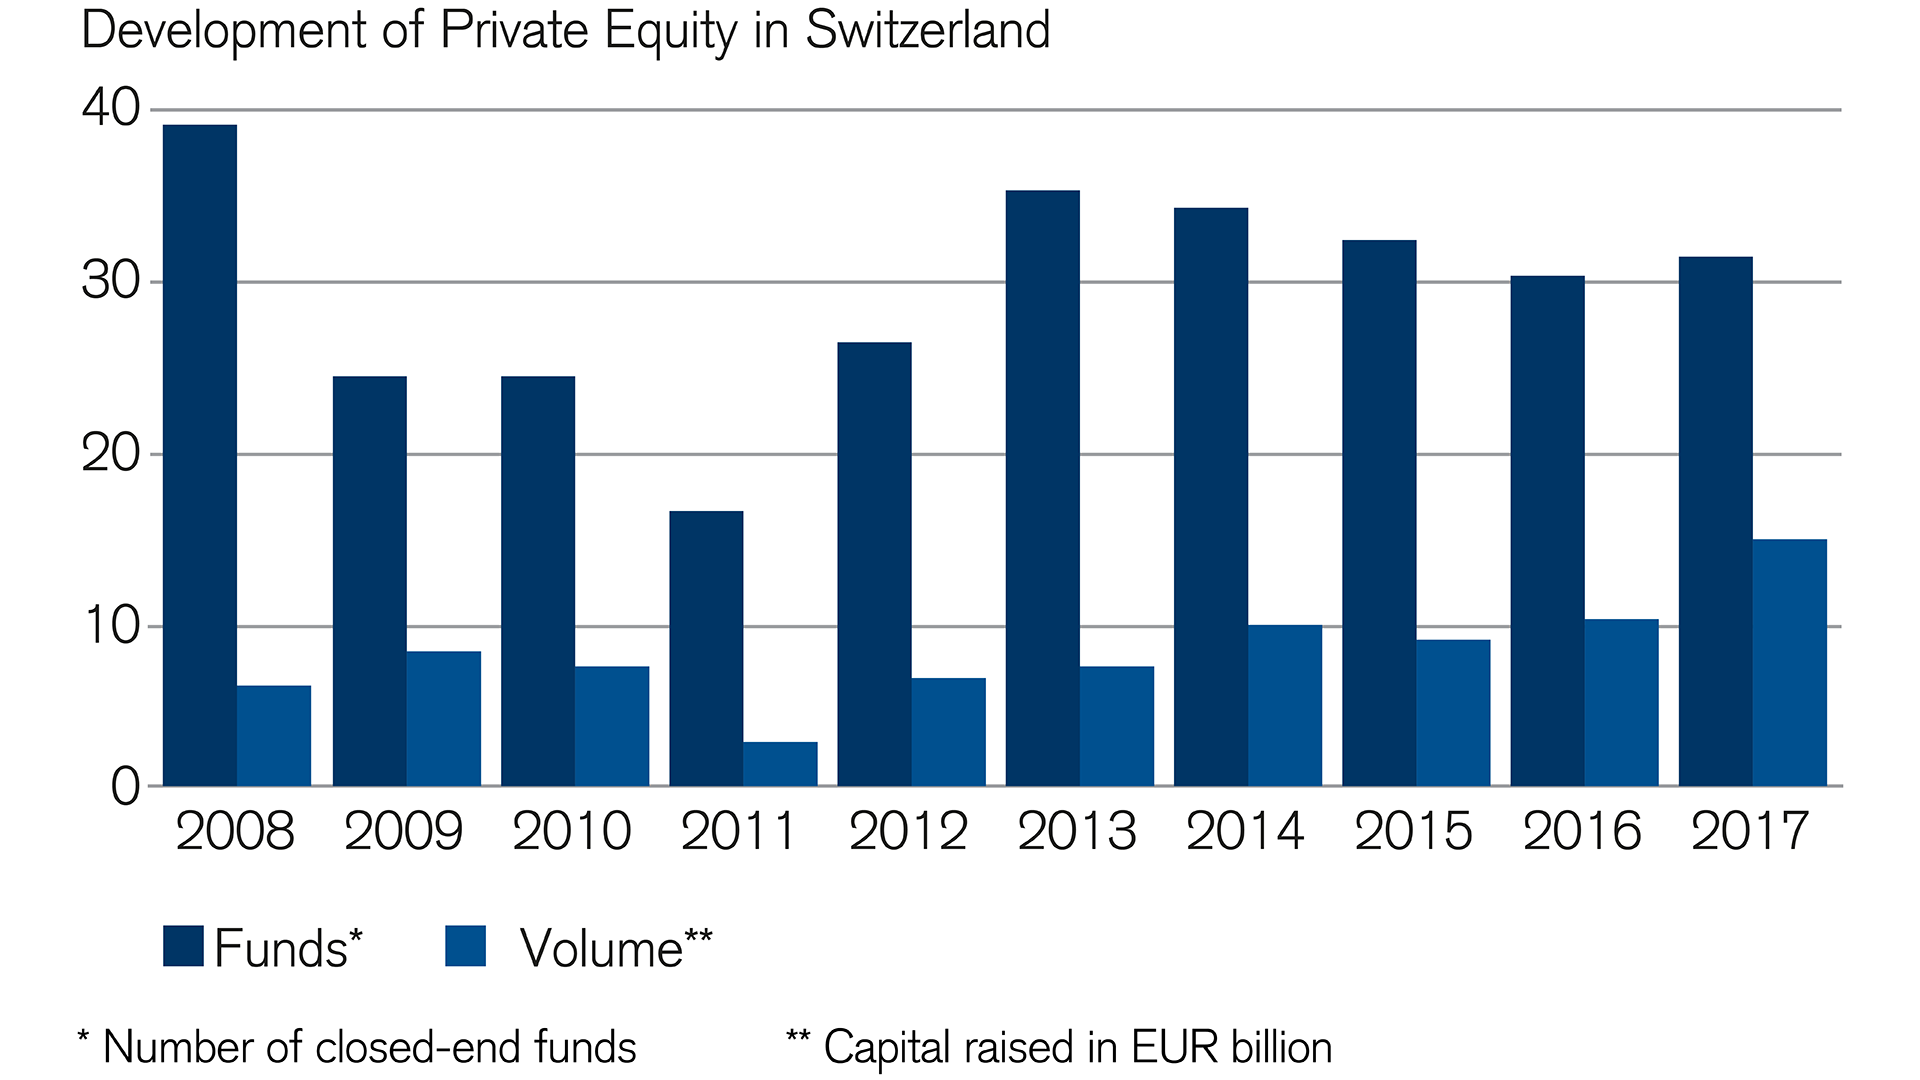 investing-in-private-equity-on-the-rise